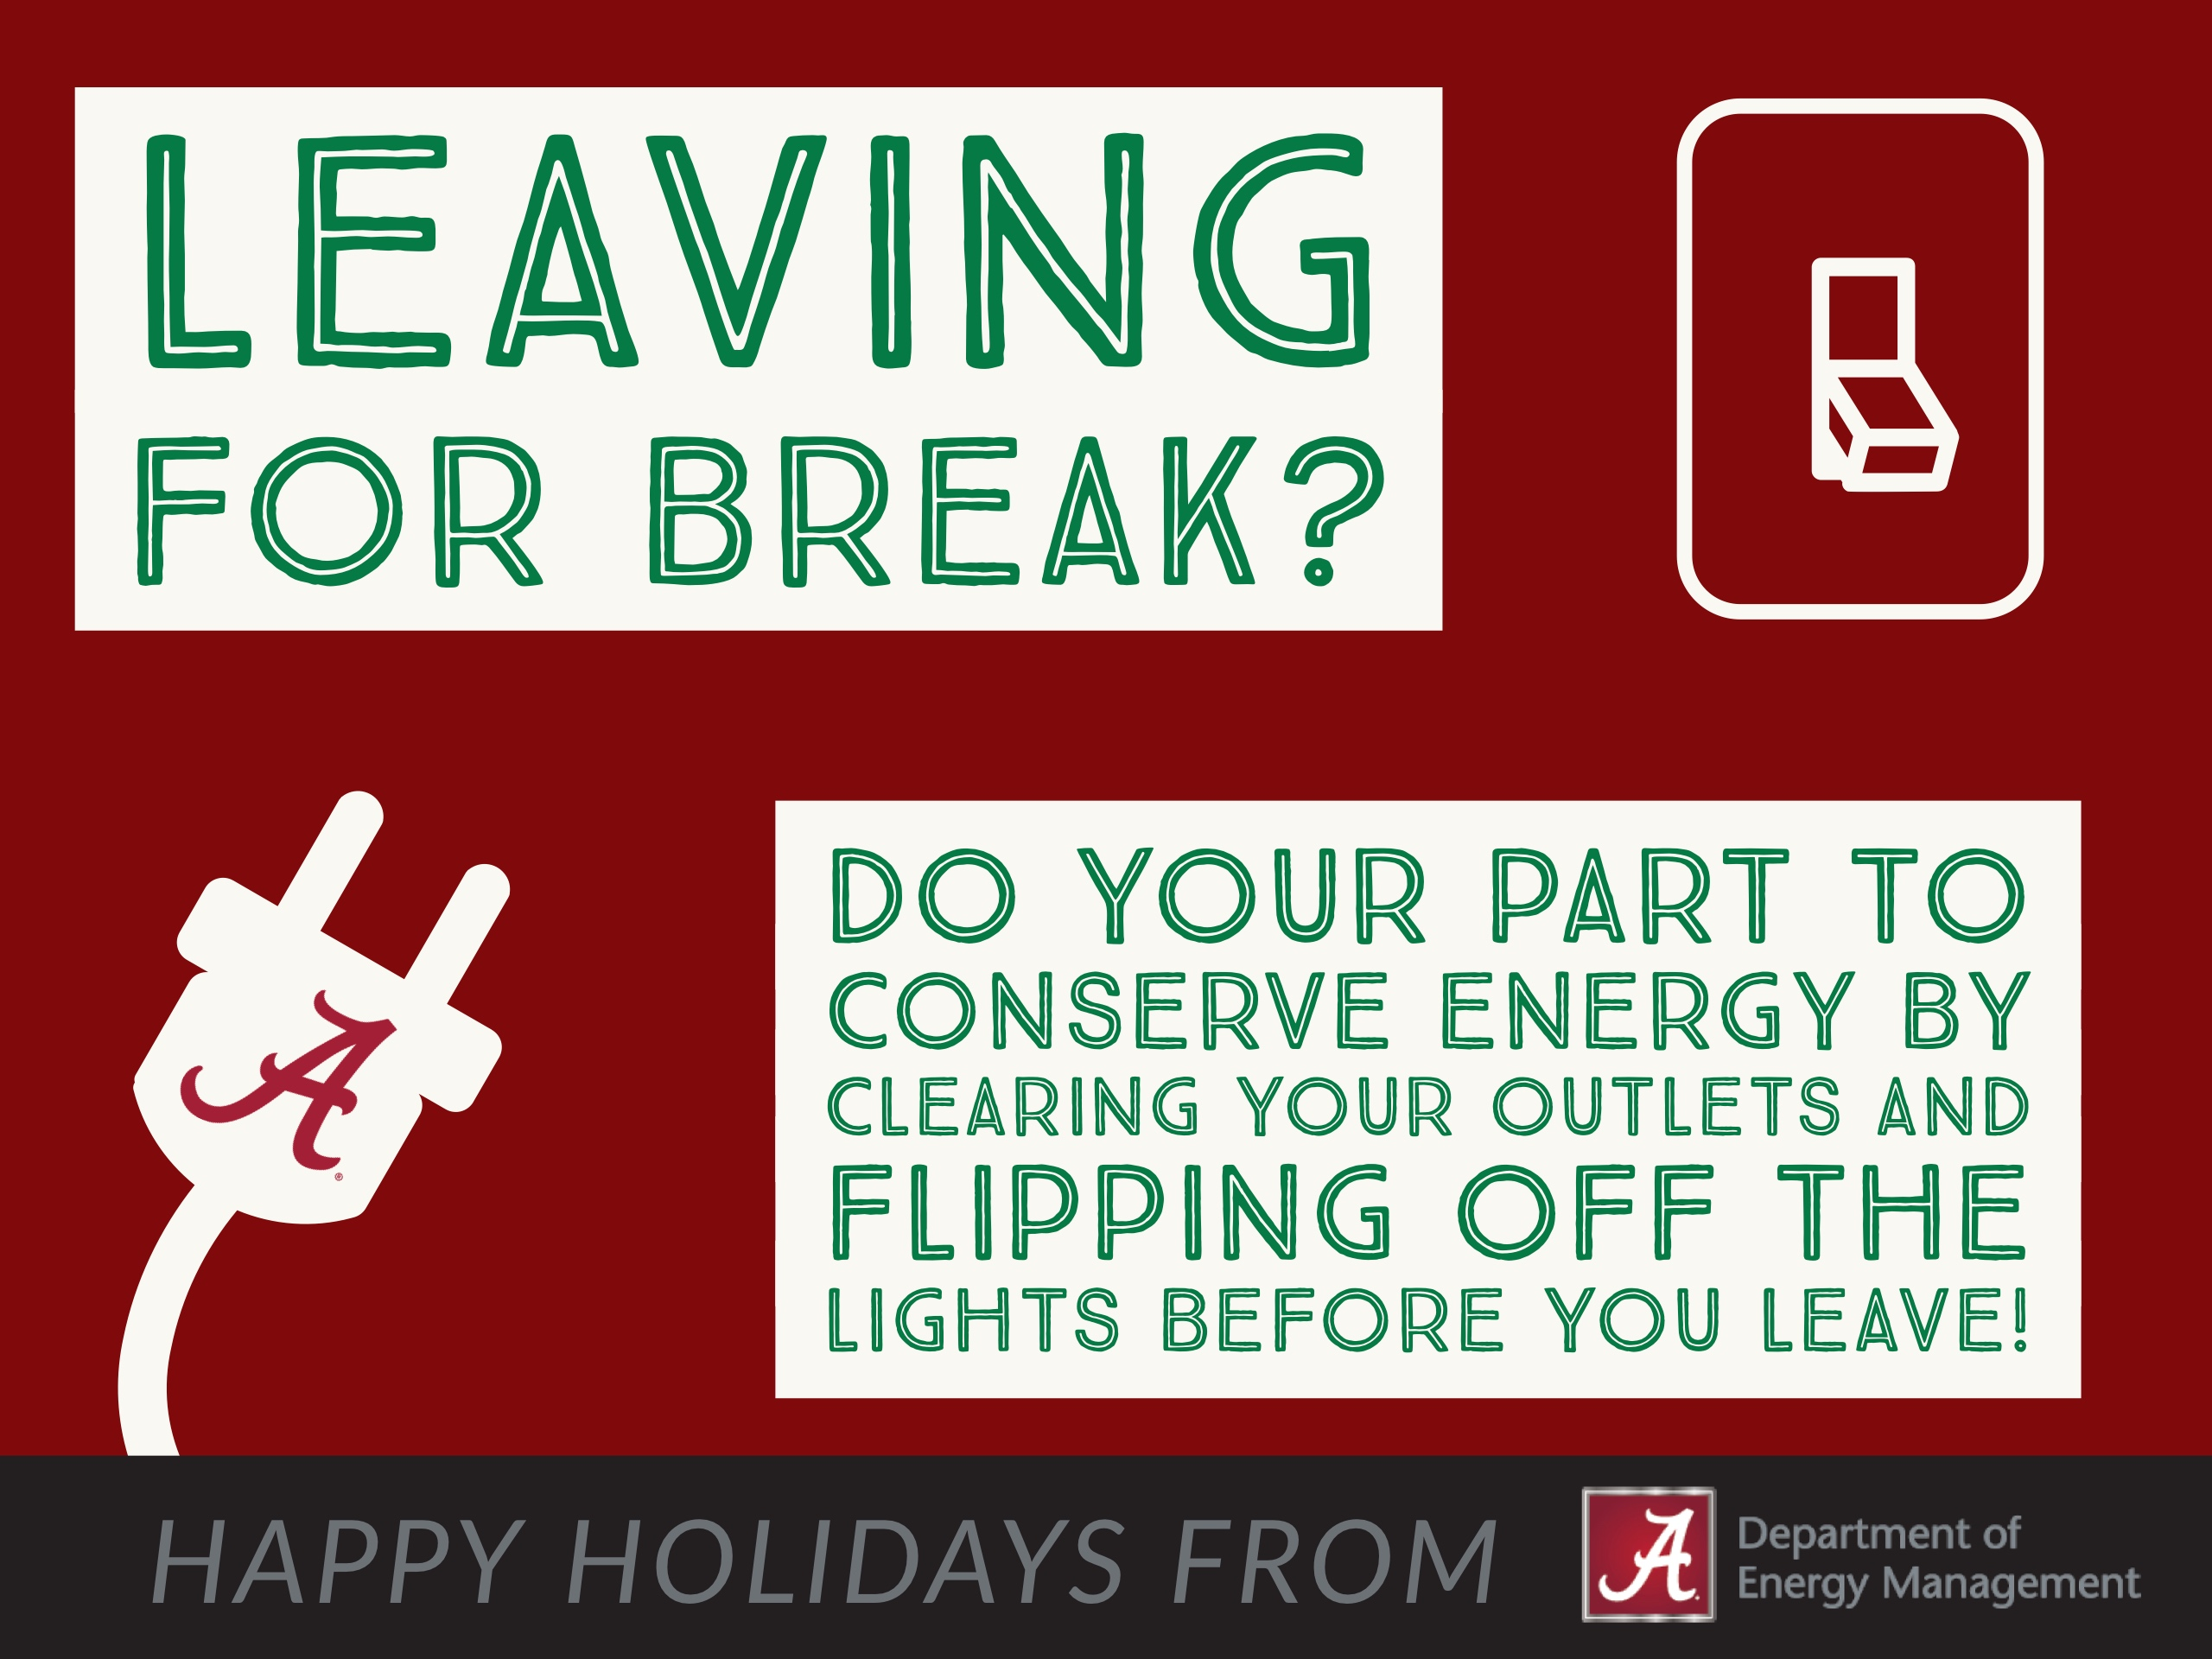 When you leave the residence halls for break, do your part to conserve energy by unplugging items and flipping off the lights.